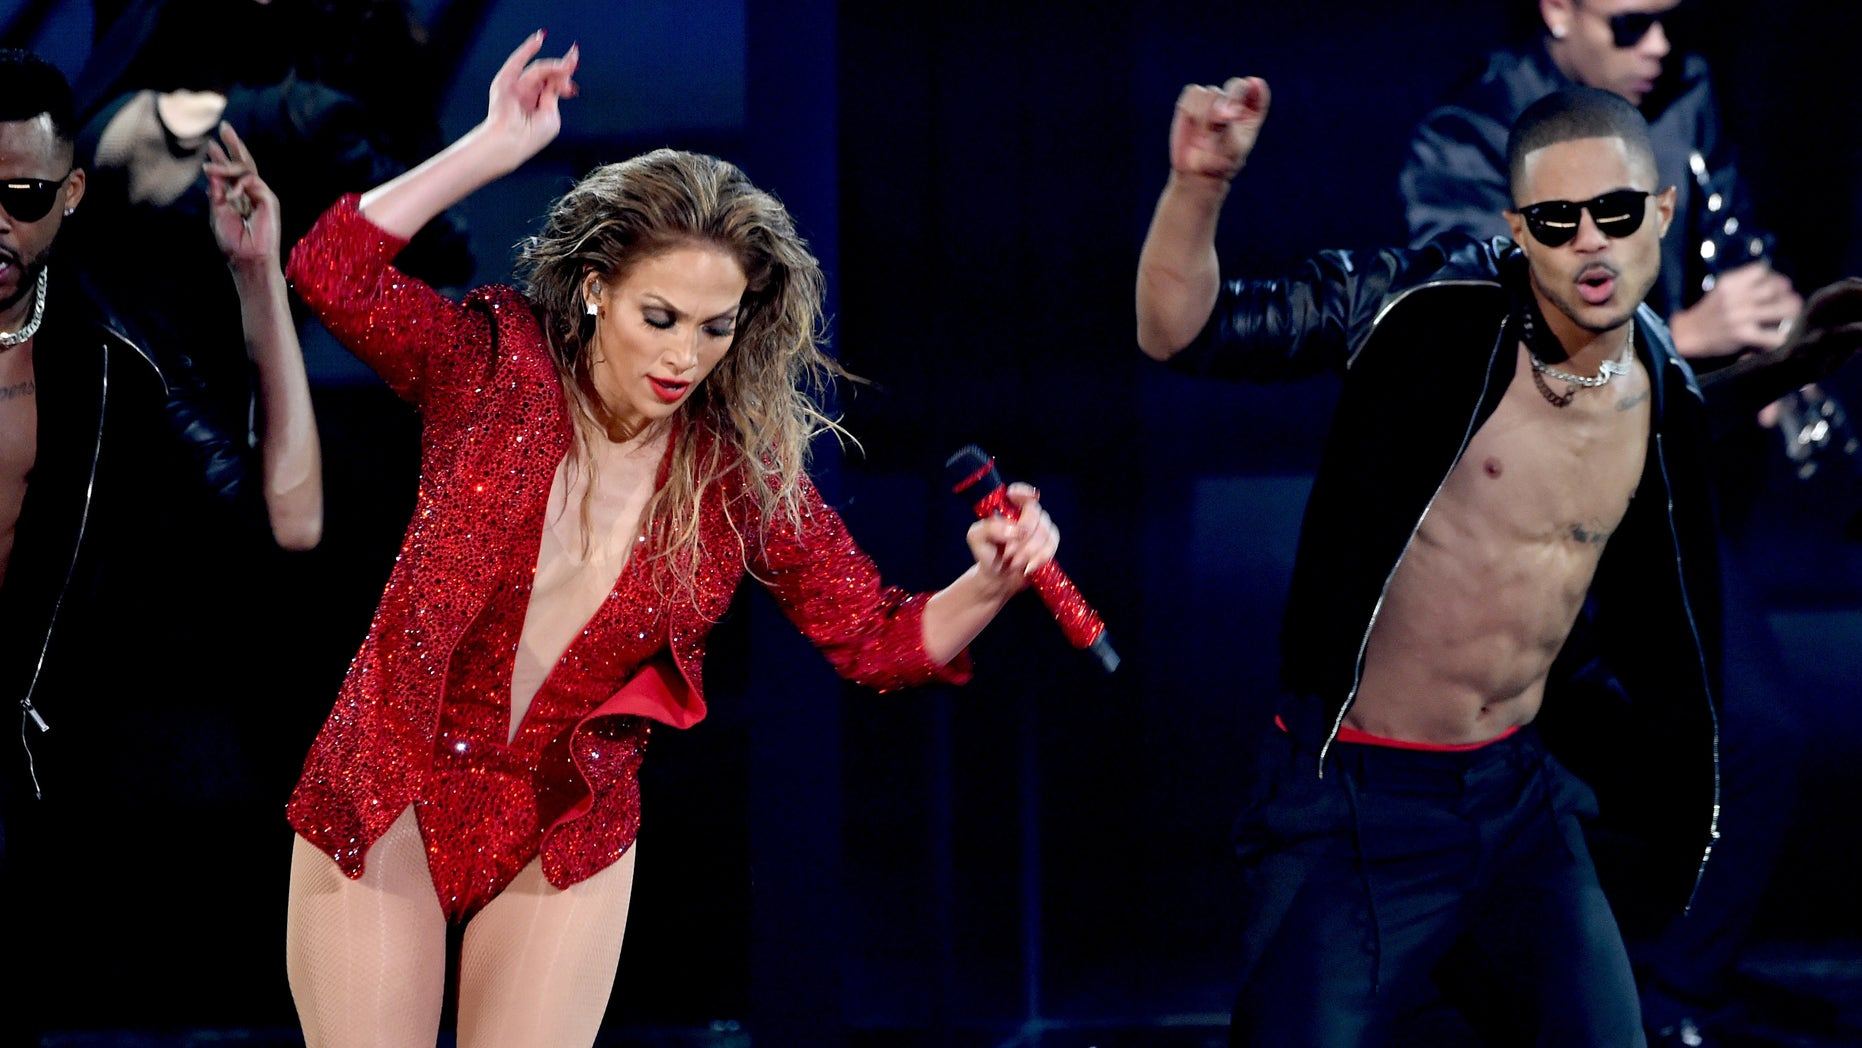 Jennifer Lopez at the 2014 American Music Awards on November 23, 2014 in Los Angeles, California.